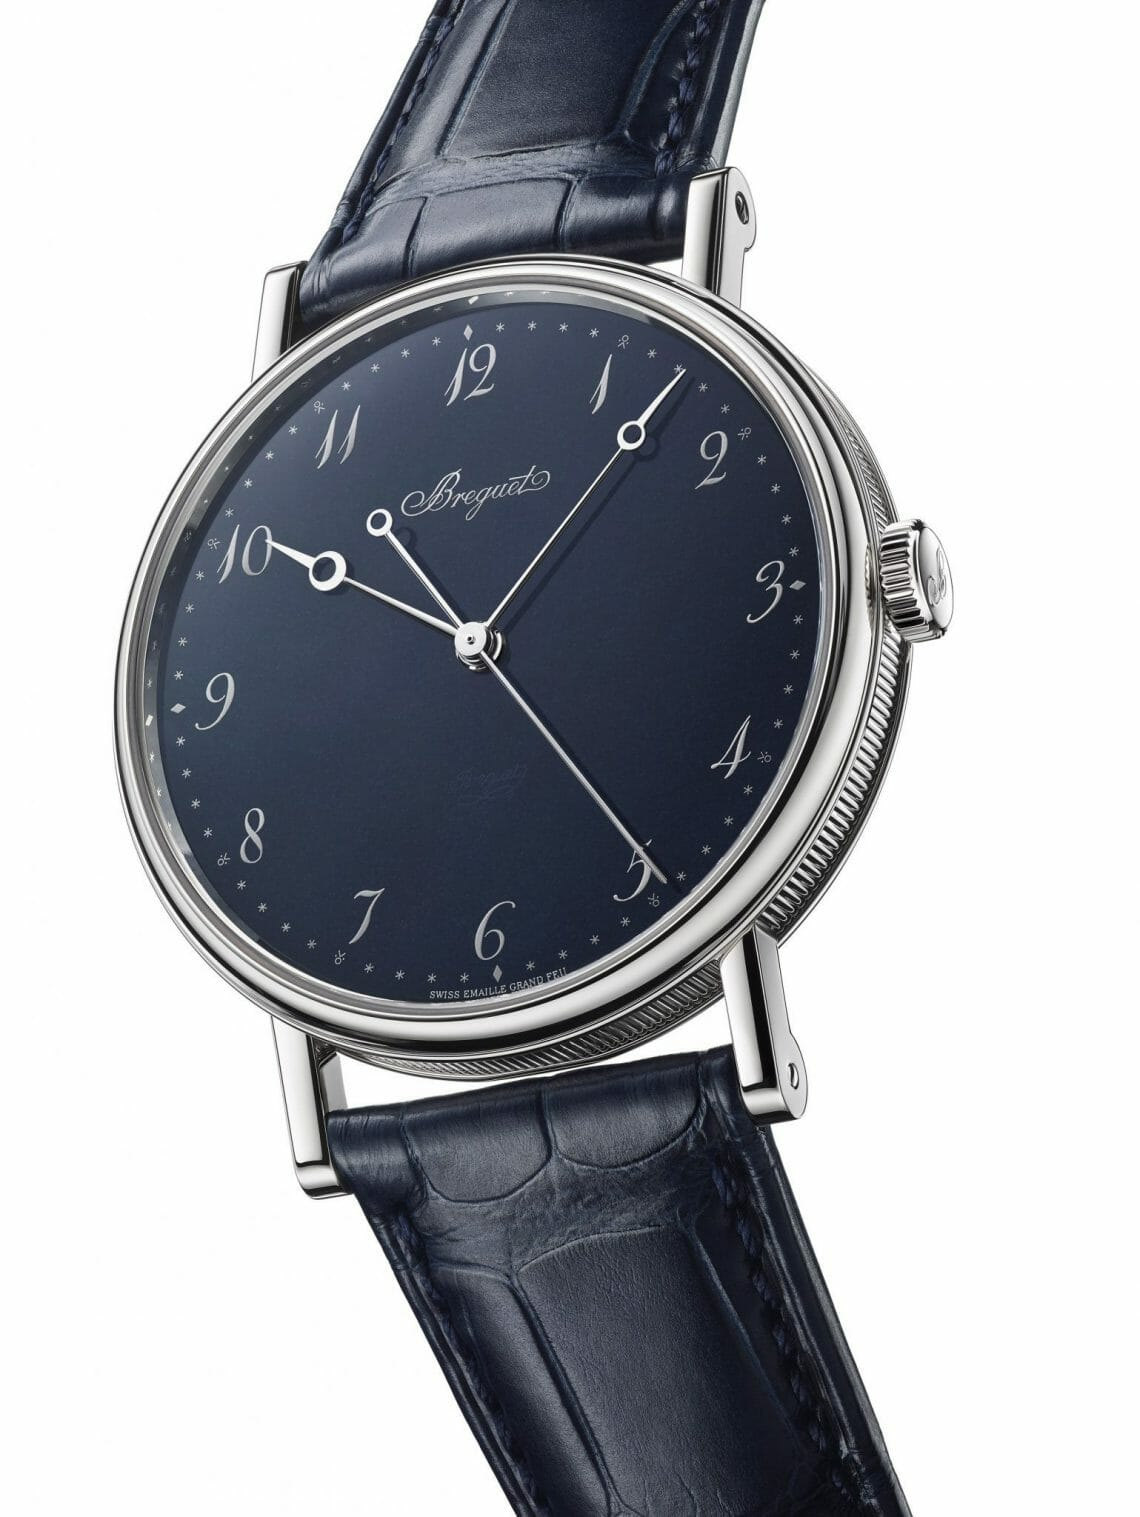 5175 Ginza Anniversary Special Series Breguet Celebrates 10th Anniversary of Boutique In Ginza Japan, Unveils Special Series Of Watches - EAT LOVE SAVOR International luxury lifestyle magazine and bookazines